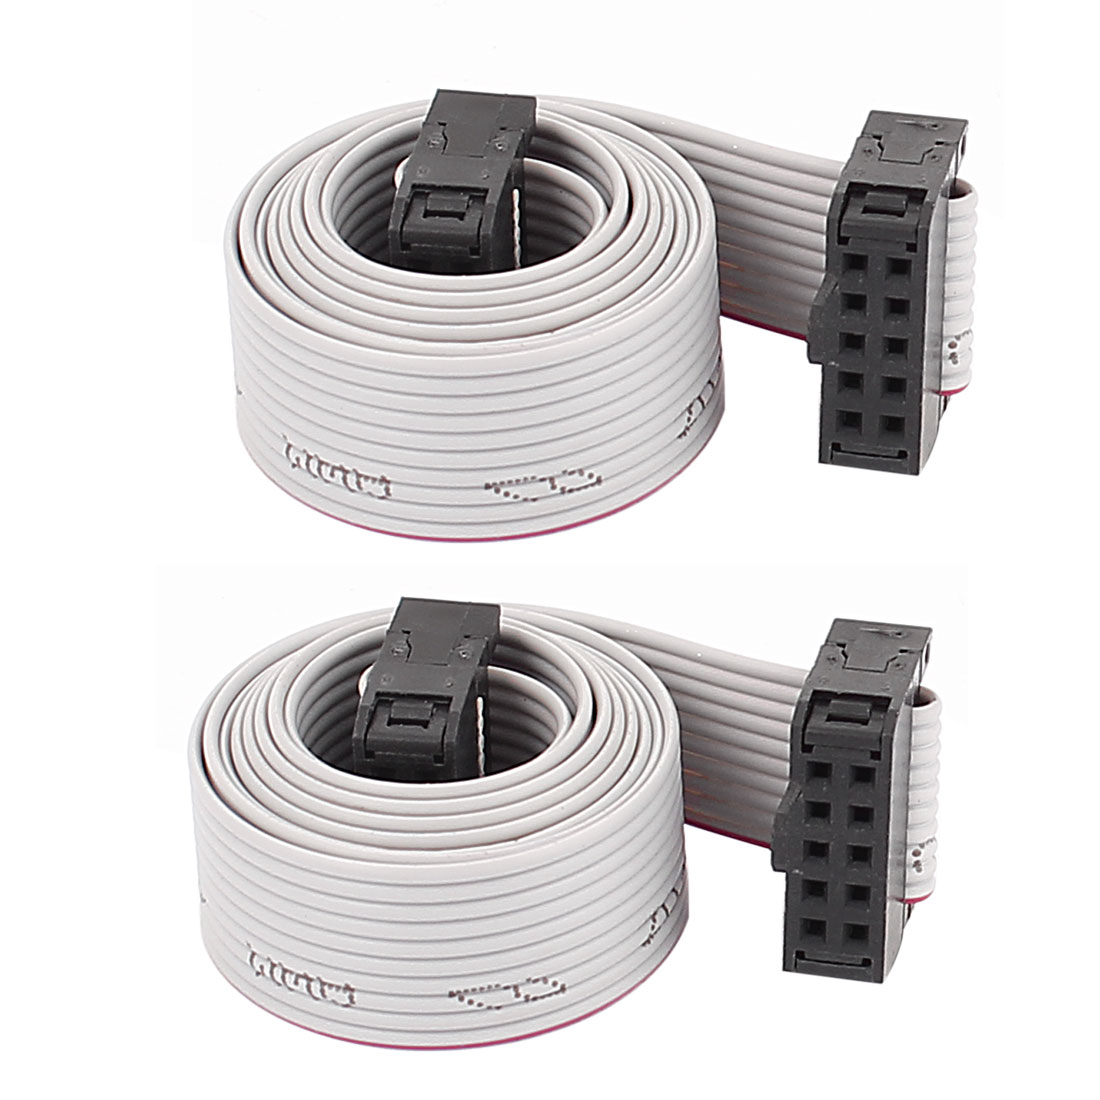 2PCS 58cm Length 10 Pin 2.54mm Pitch IDC Ribbon Cable for ISP JTAG ARM